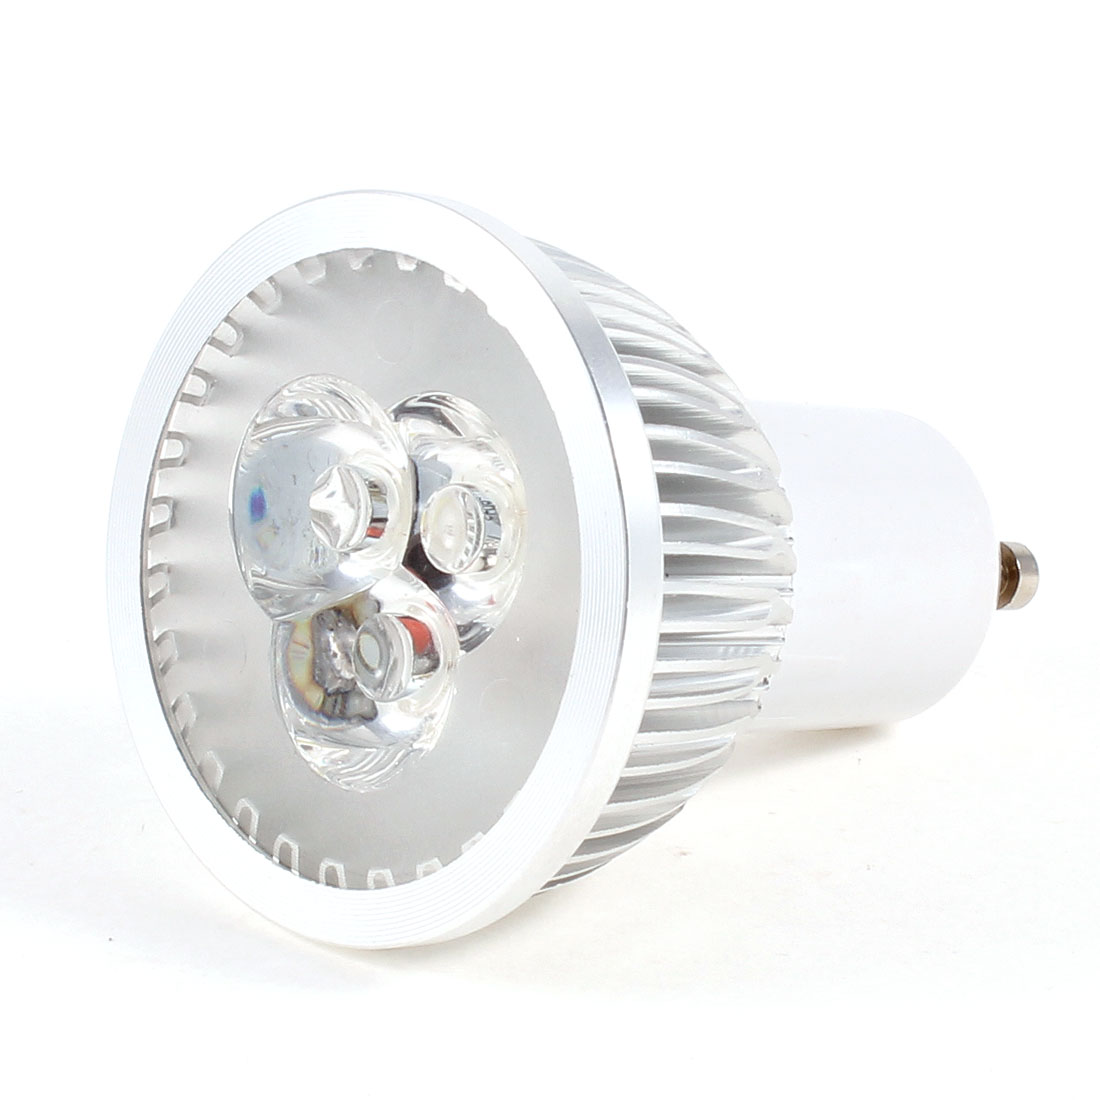 220VAC 3W 3 LED White Light Lamp Energy Saving GU10 Spotlight Bulb